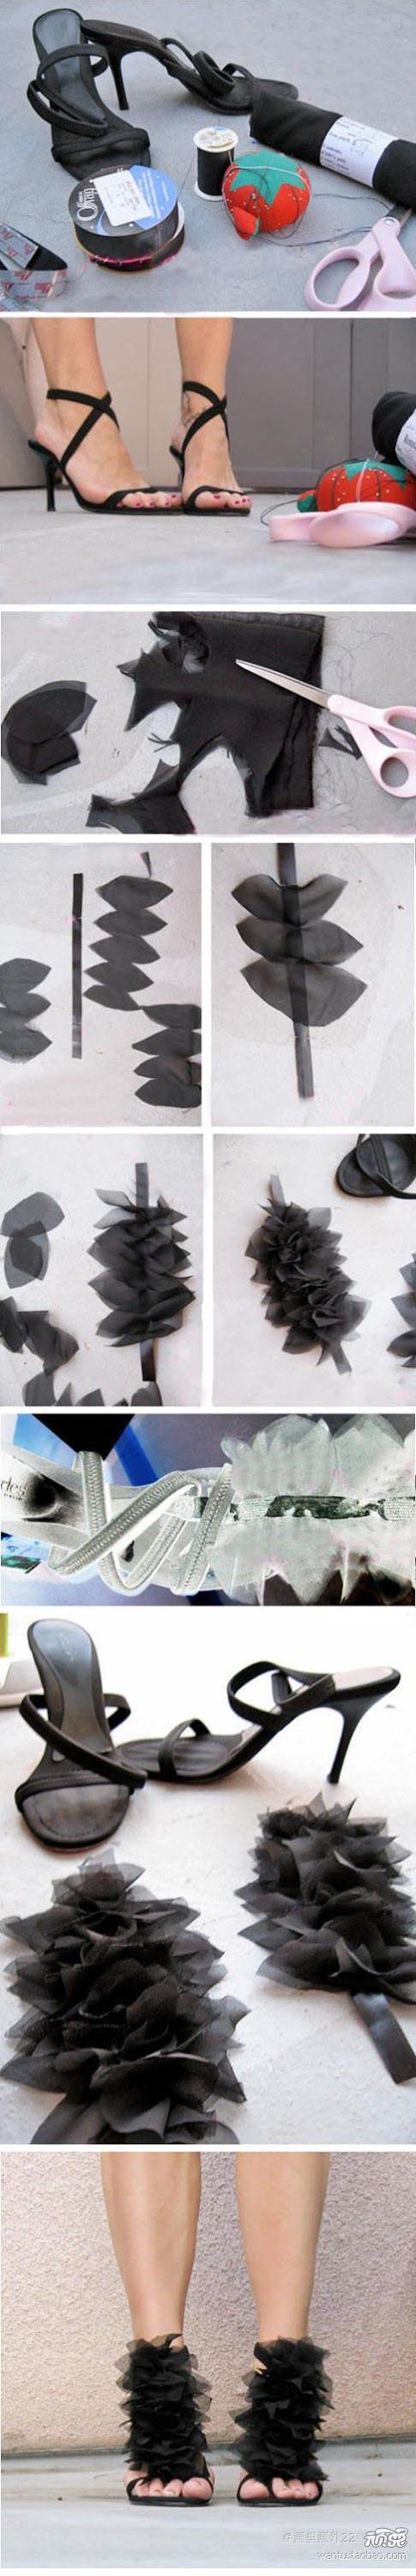 DIY a plain pair of Heels into a Faux Couture Pair of Heels by adding Petals! LOVE LOVE LOVE!!